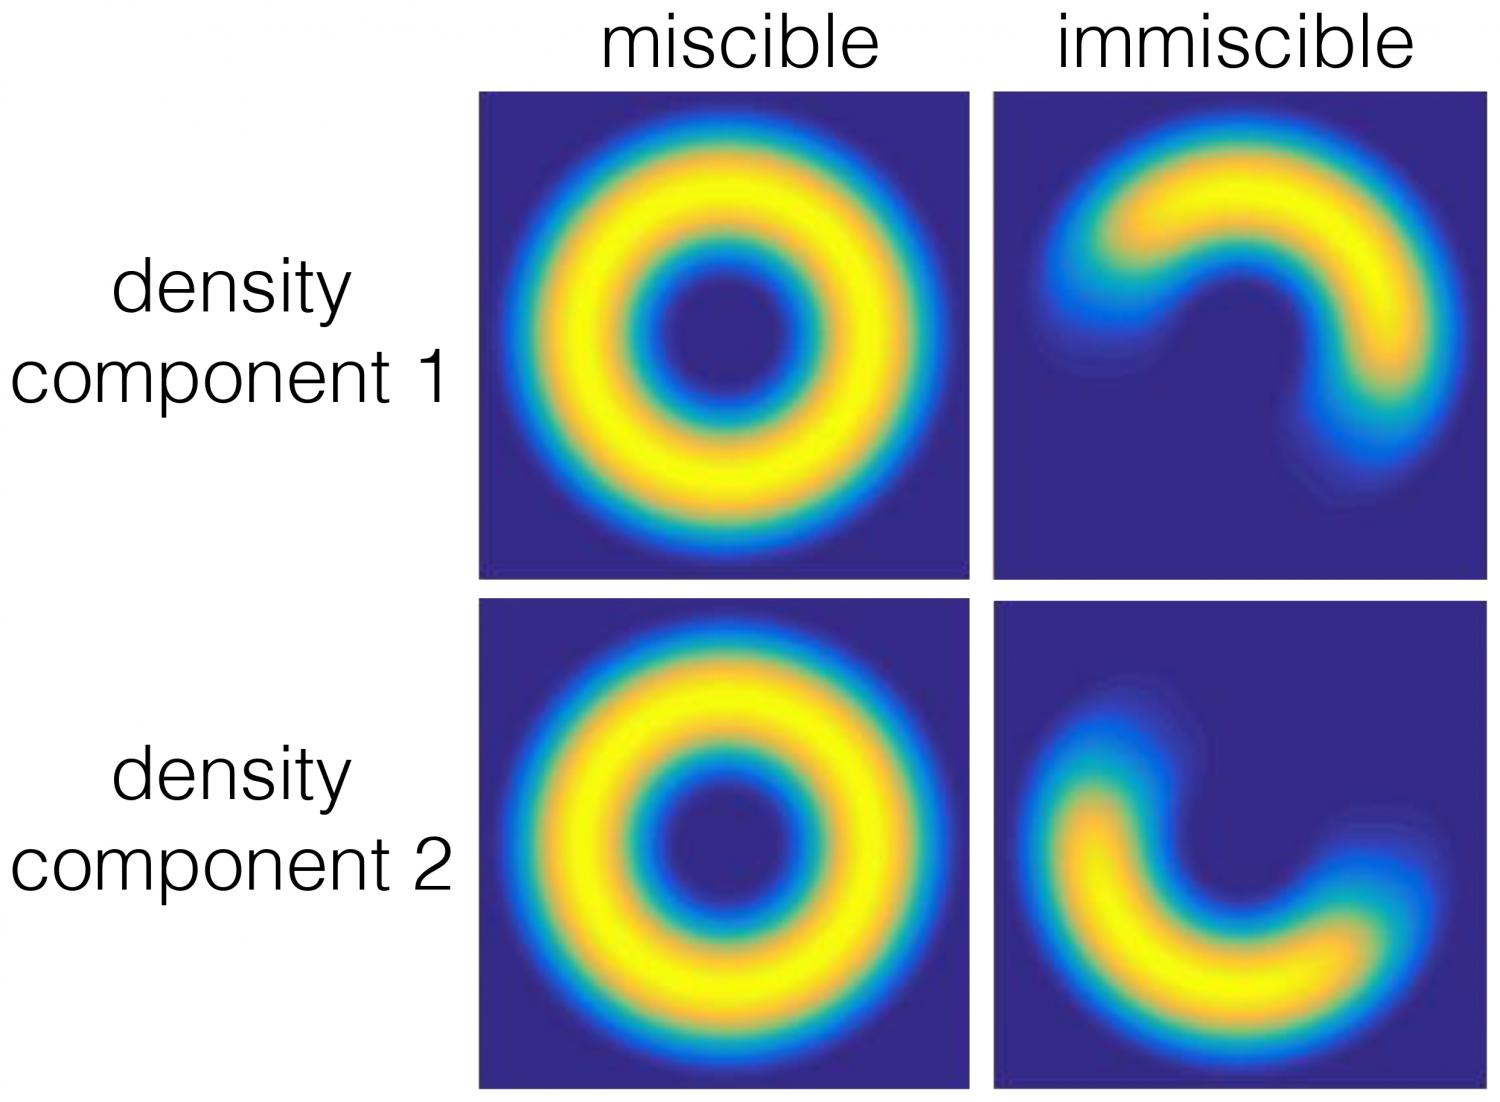 Odd-petal-number states and persistent flows in spin-orbit-coupled Bose-Einstein condensates